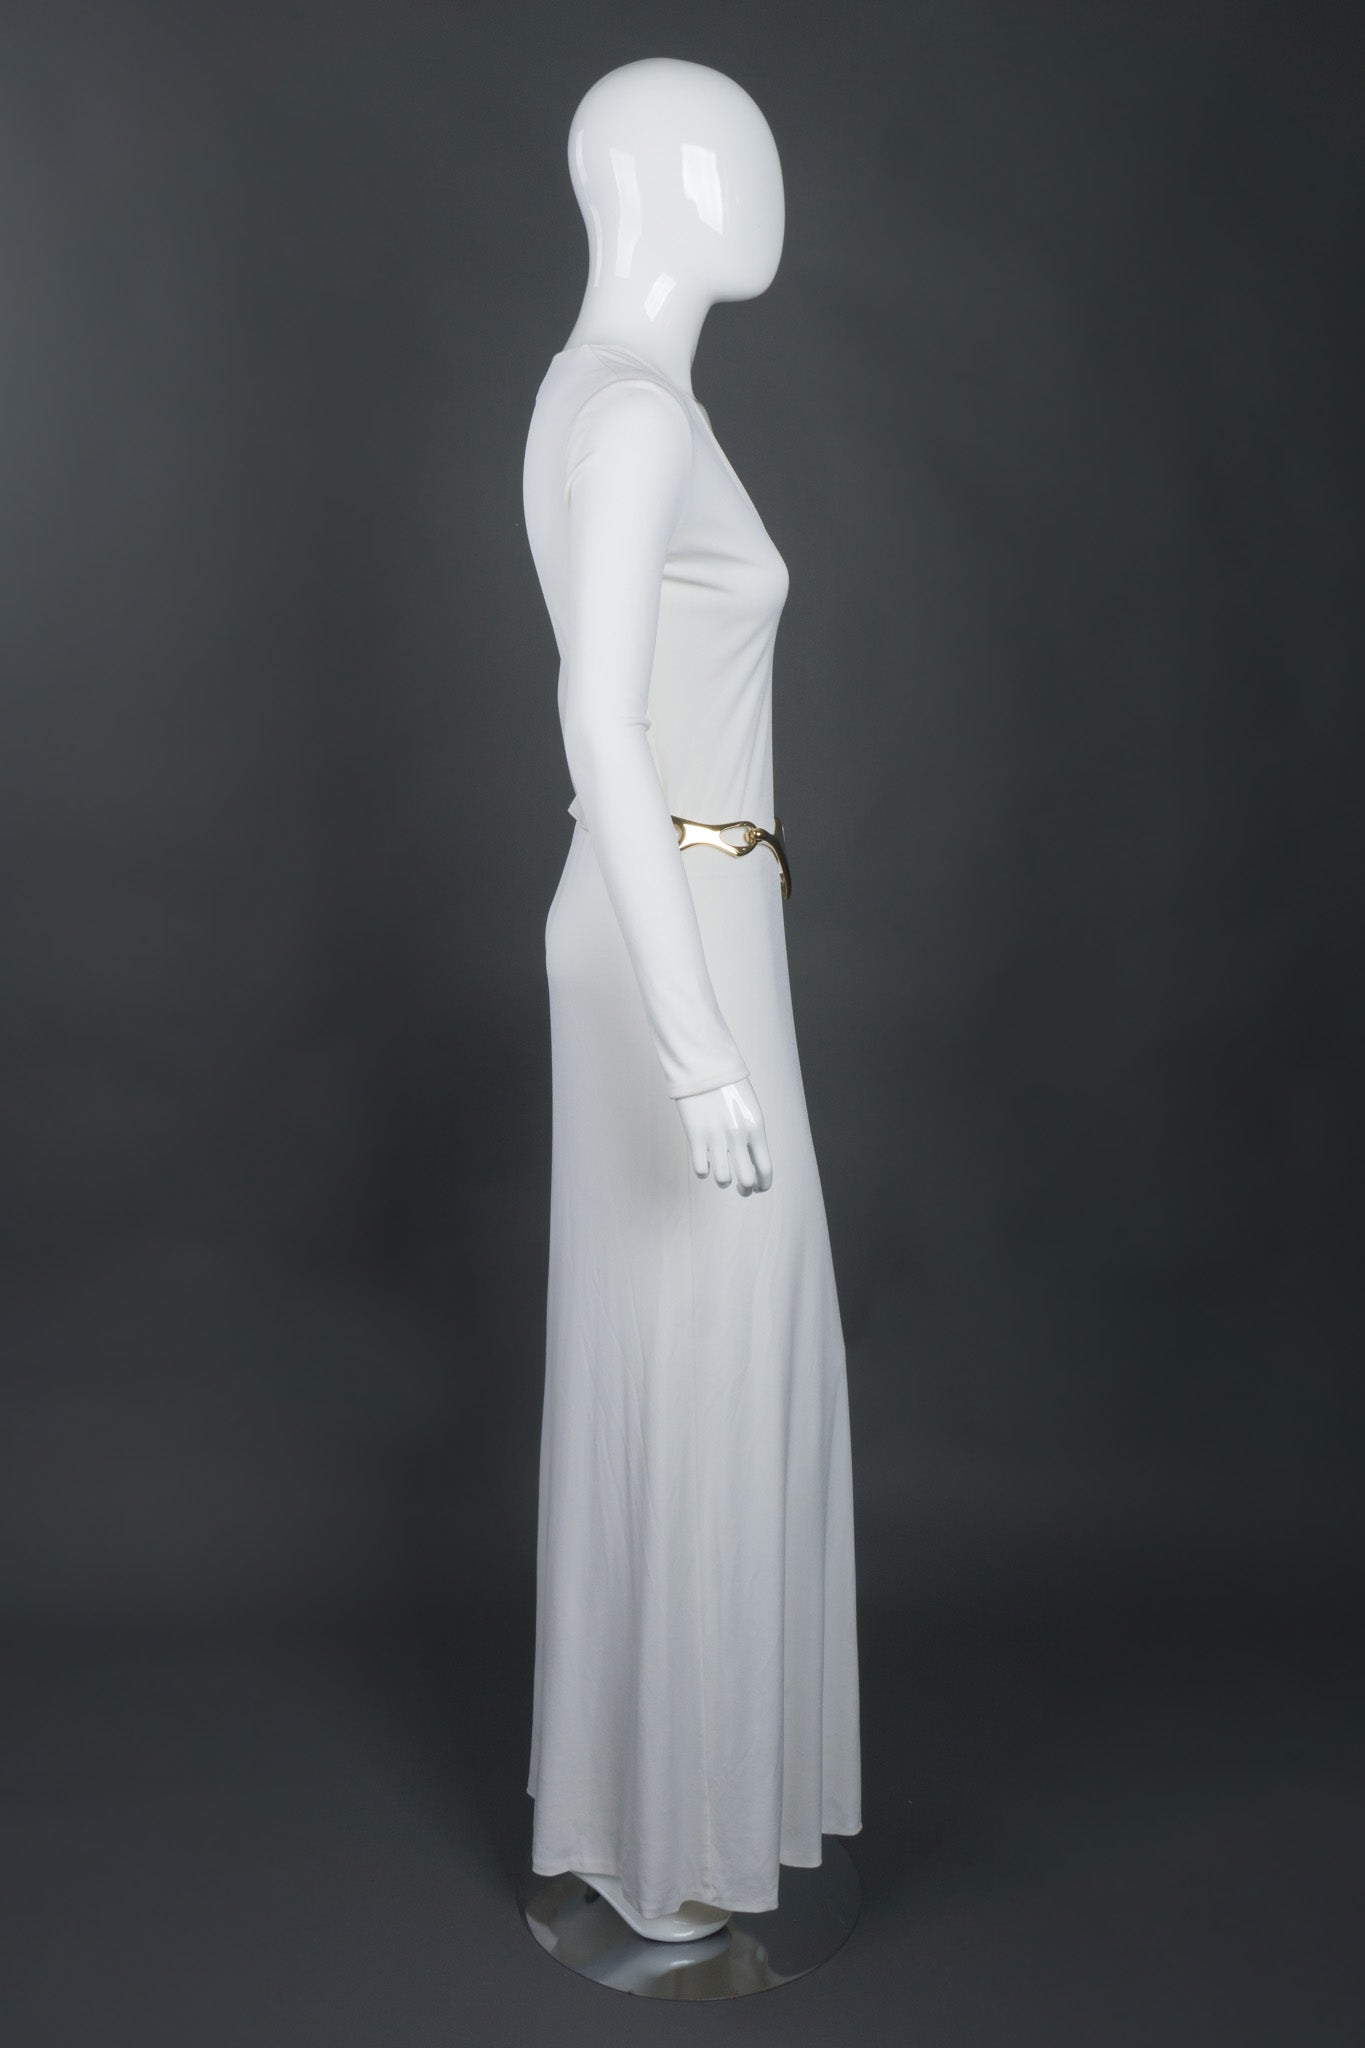 Tom Ford Gucci Rare Iconic Minimalist 1996 White Jersey Gown with Belt